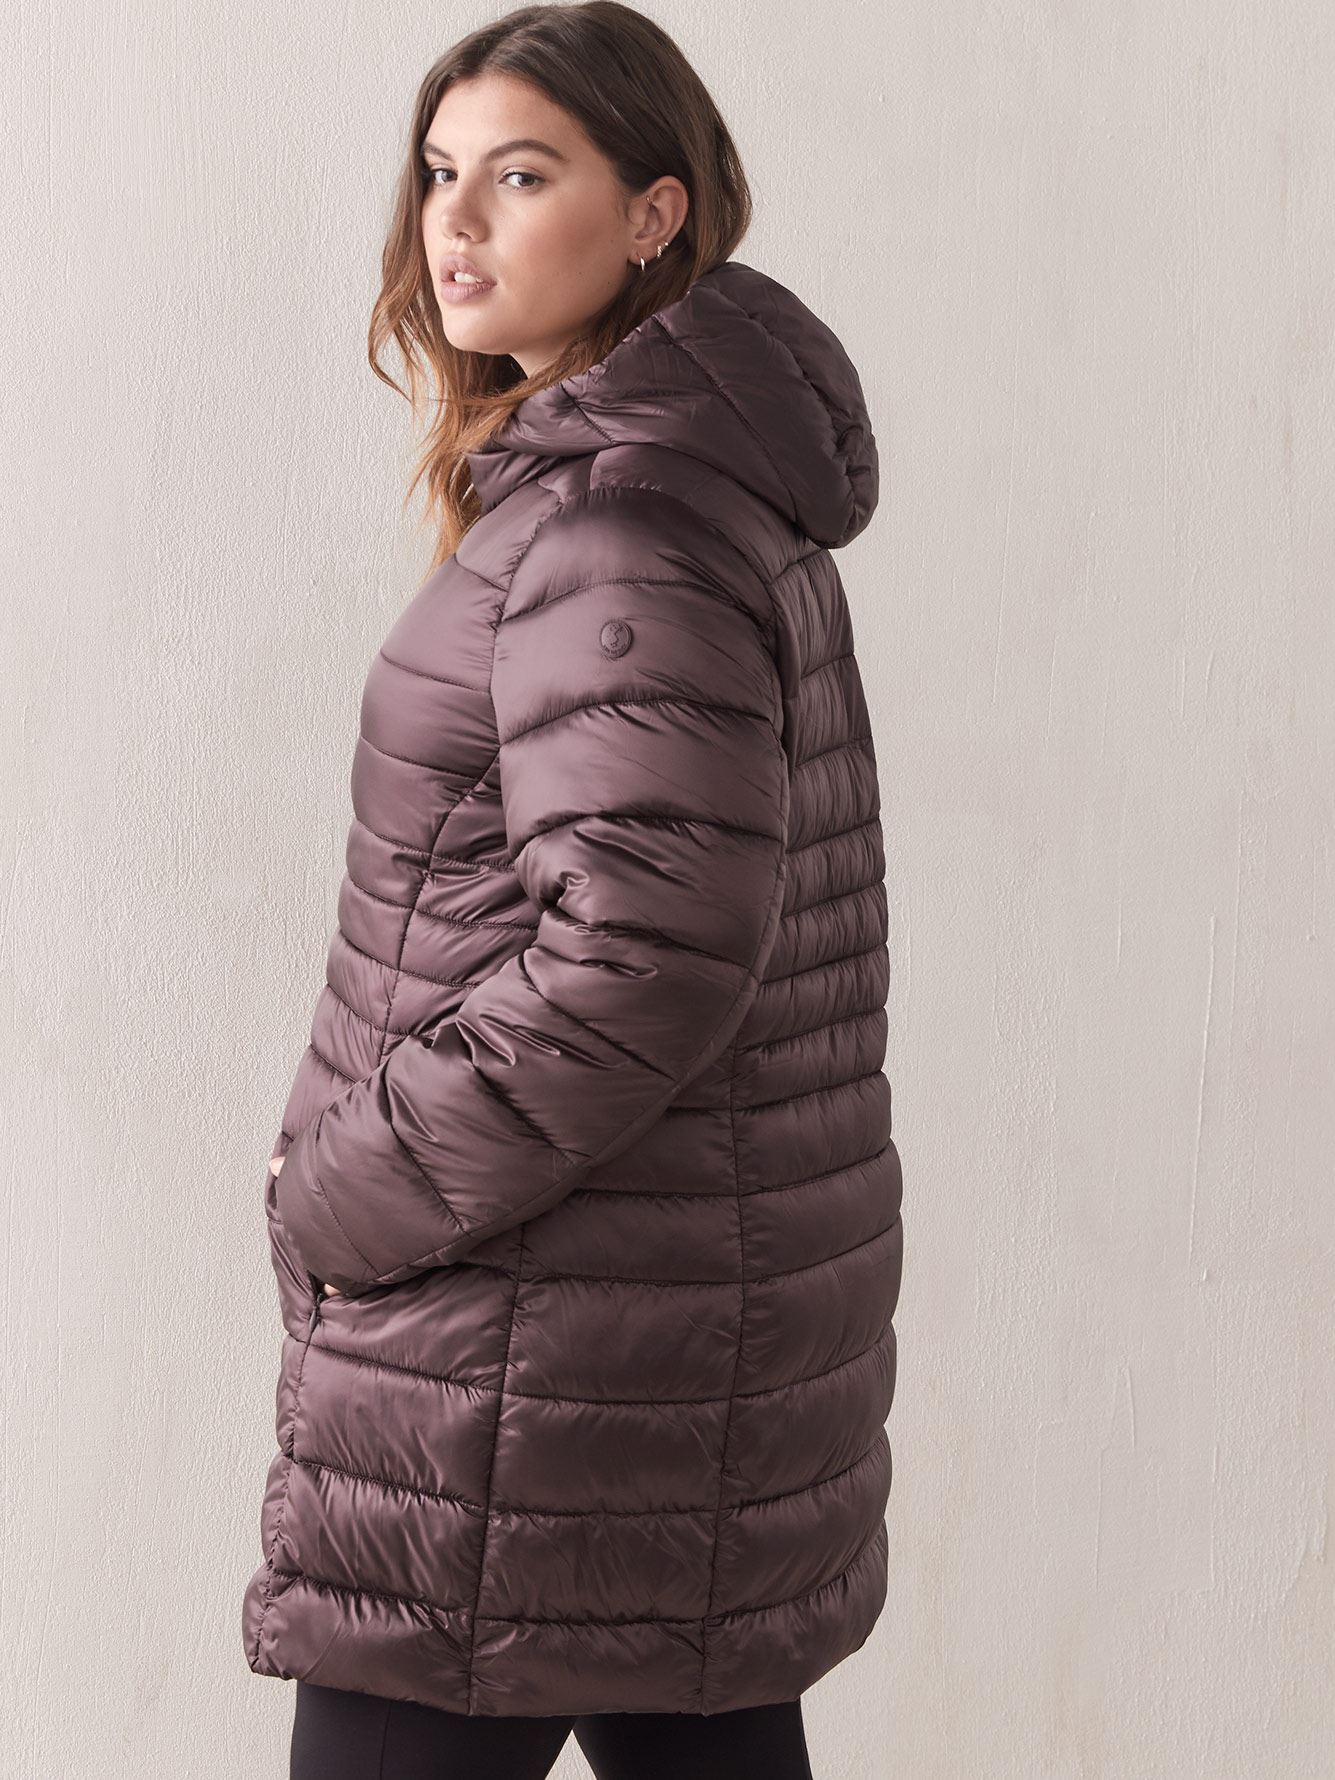 Quilted Packable Iris Long Puffer - Save the Duck